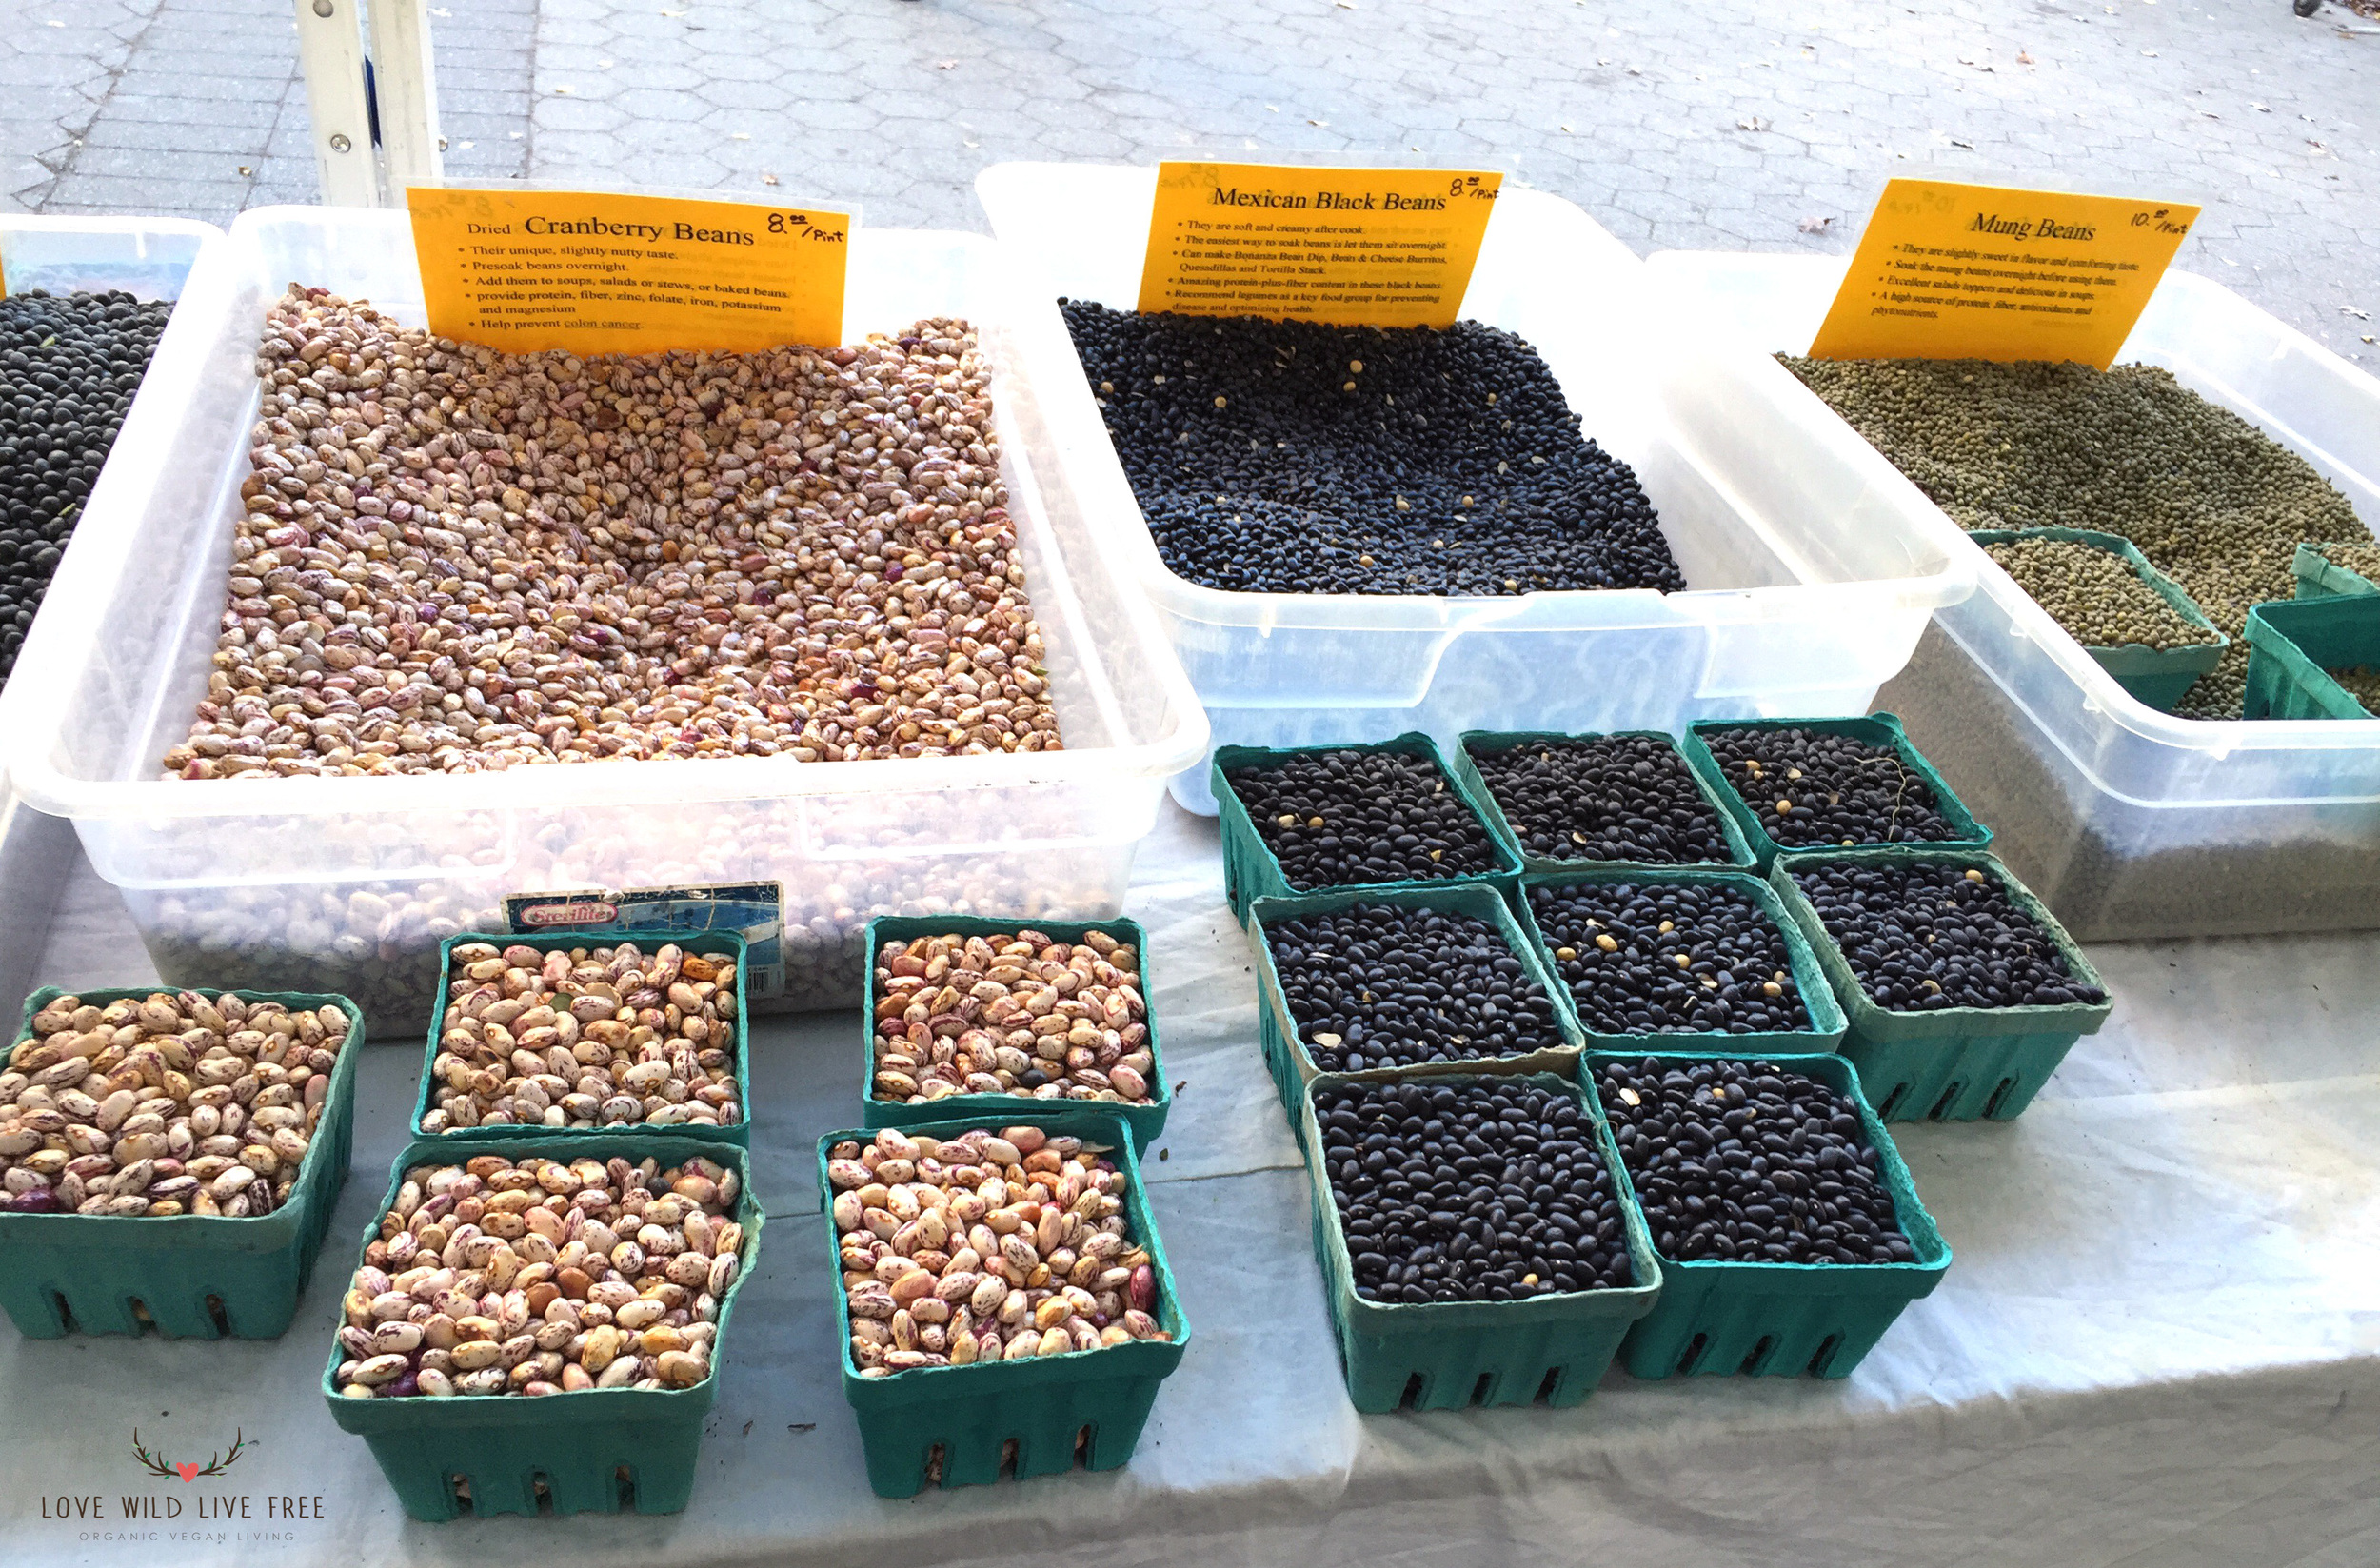 Organic cranberry beans, Mexican black beans and mung beans from Lani's Farm at GrowNYC's Greenmarket in Union Square.  Photo by Love Wild Live Free.